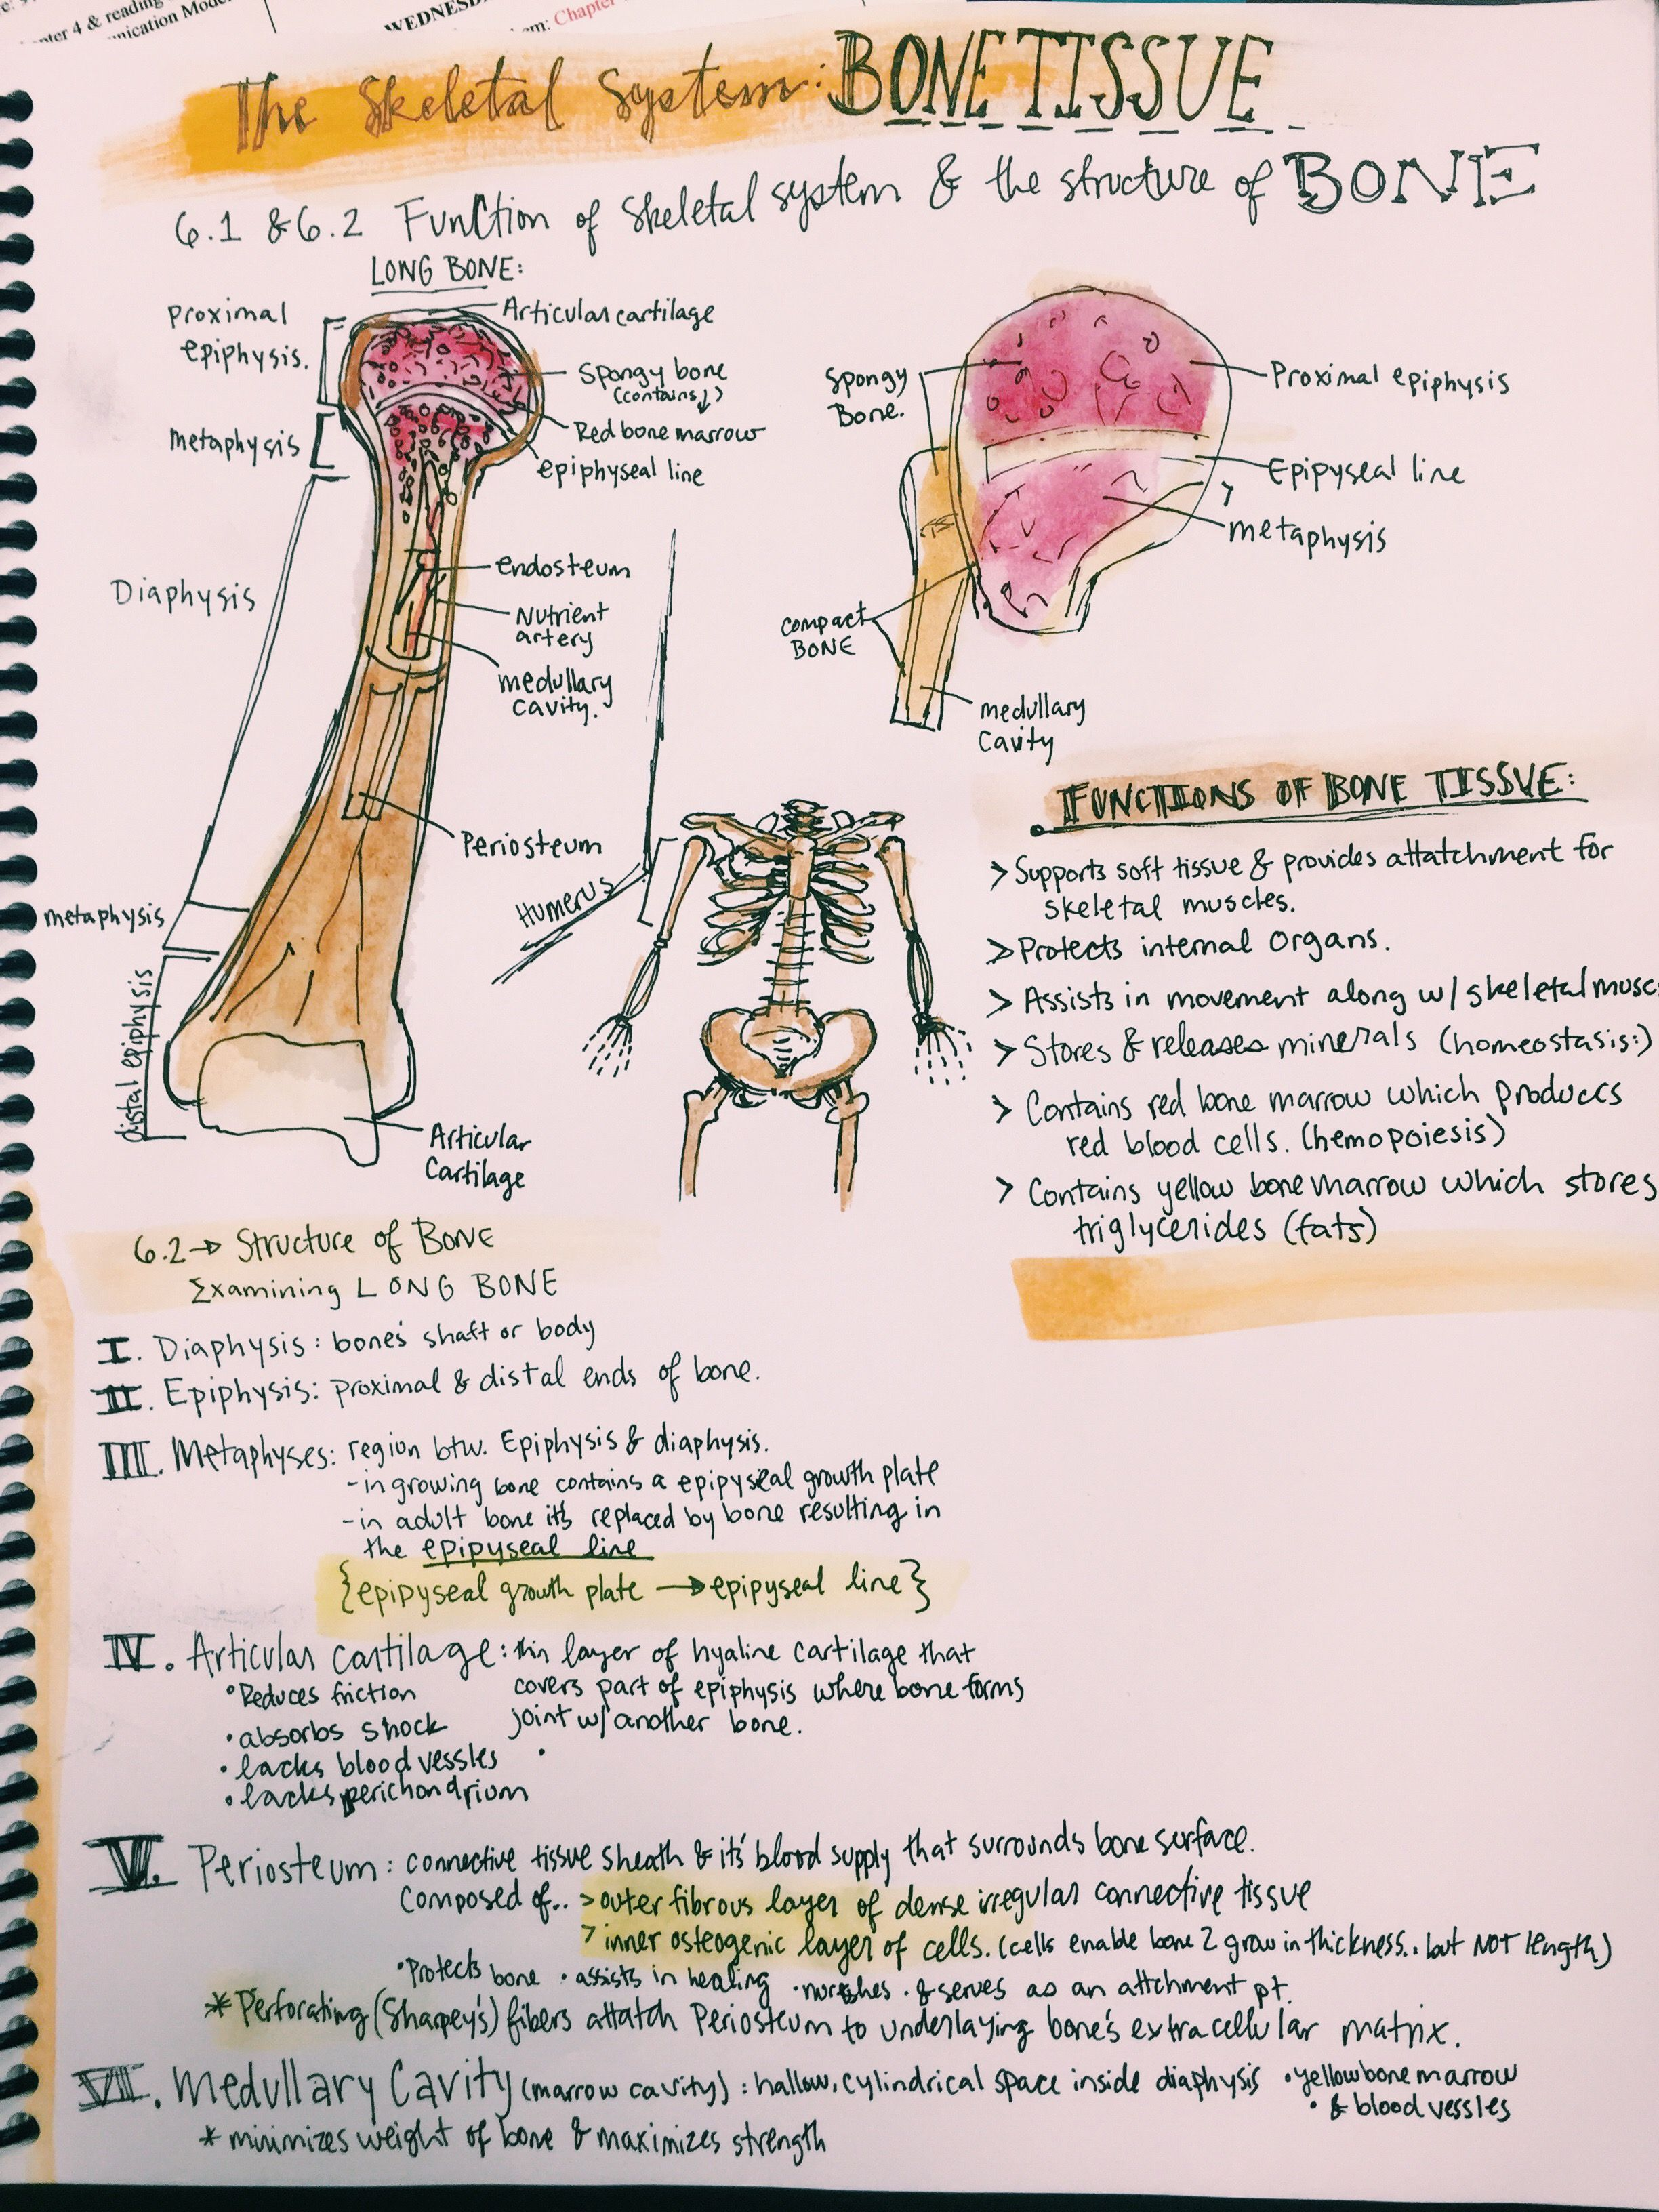 Bones and Bone tissue notes from Meriub | Anatomy and Physiology ...